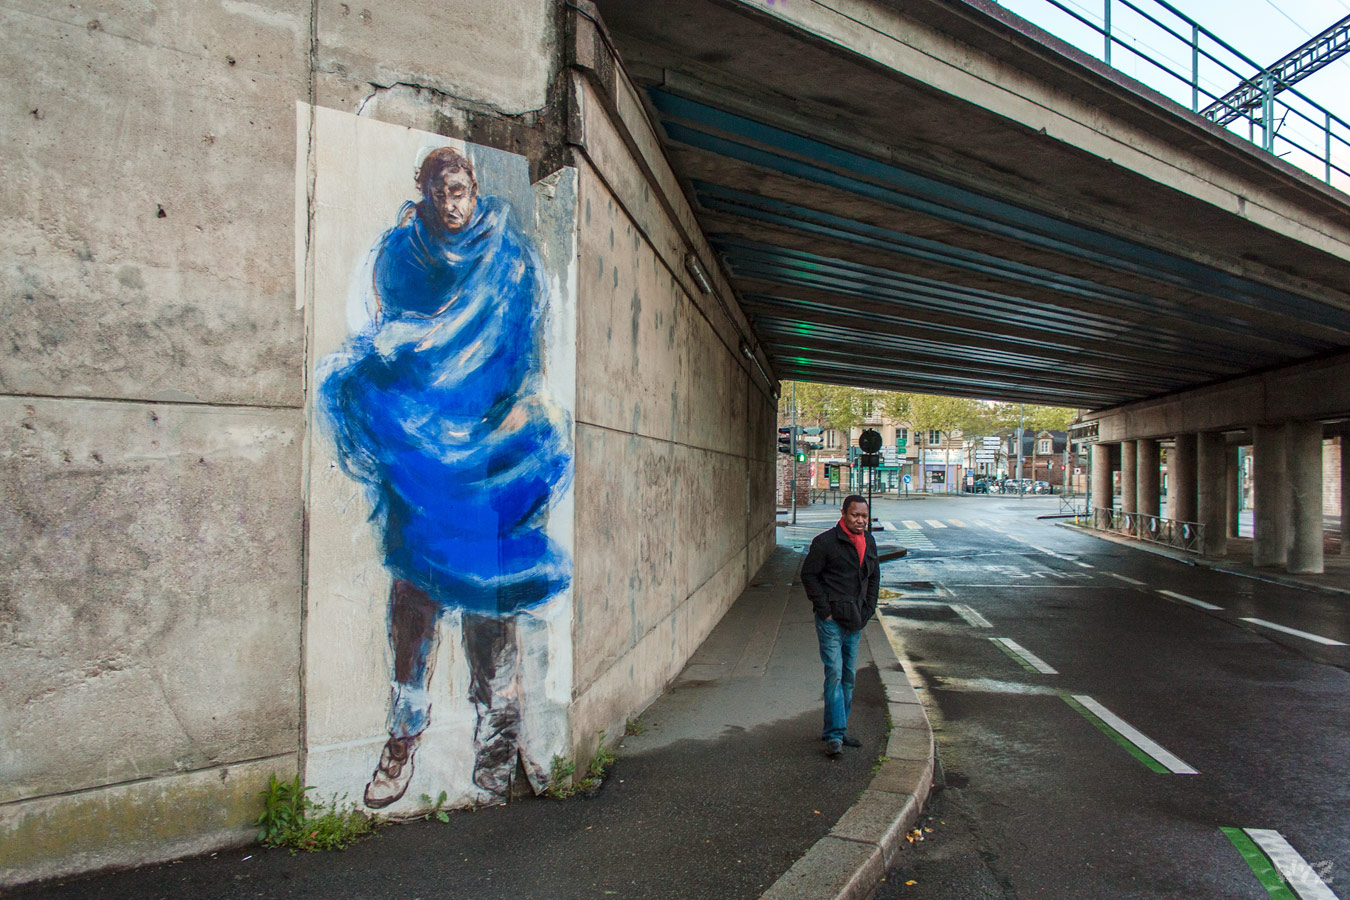 paul-bloas | blue | rennes | france